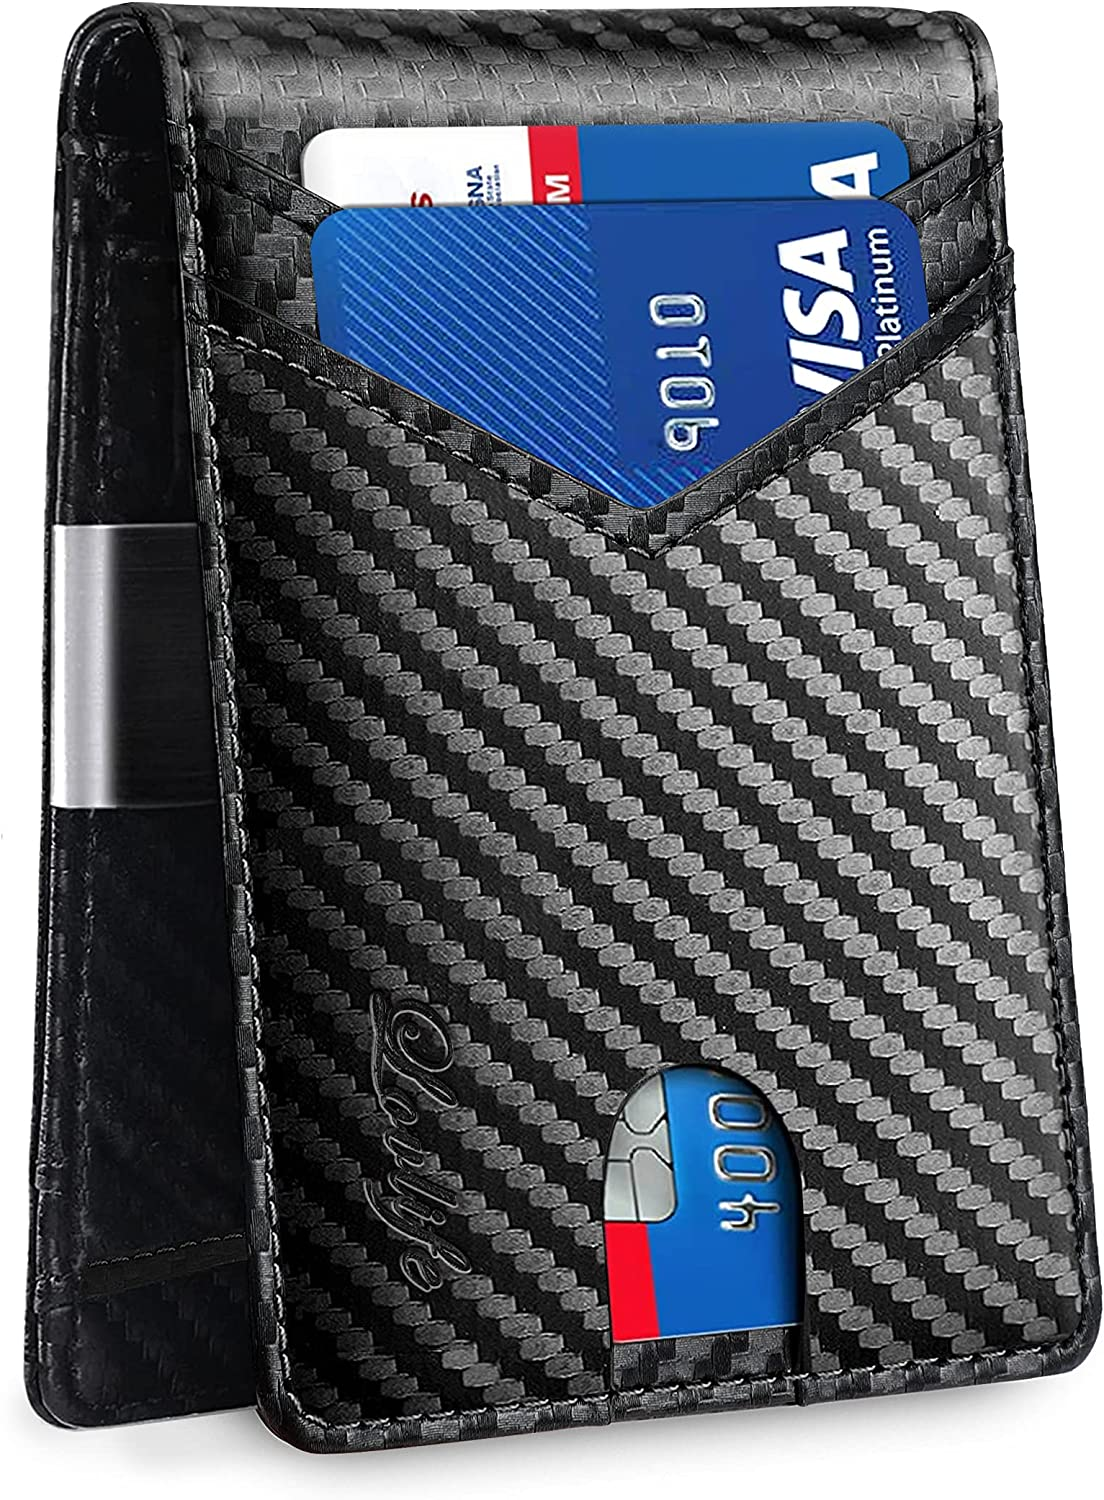 Lovlife Mens Slim Wallet with Money Clip Larger Capacity Up To 12 Cards RFID Blocking Front Pocket Wallet for Men with ID Window